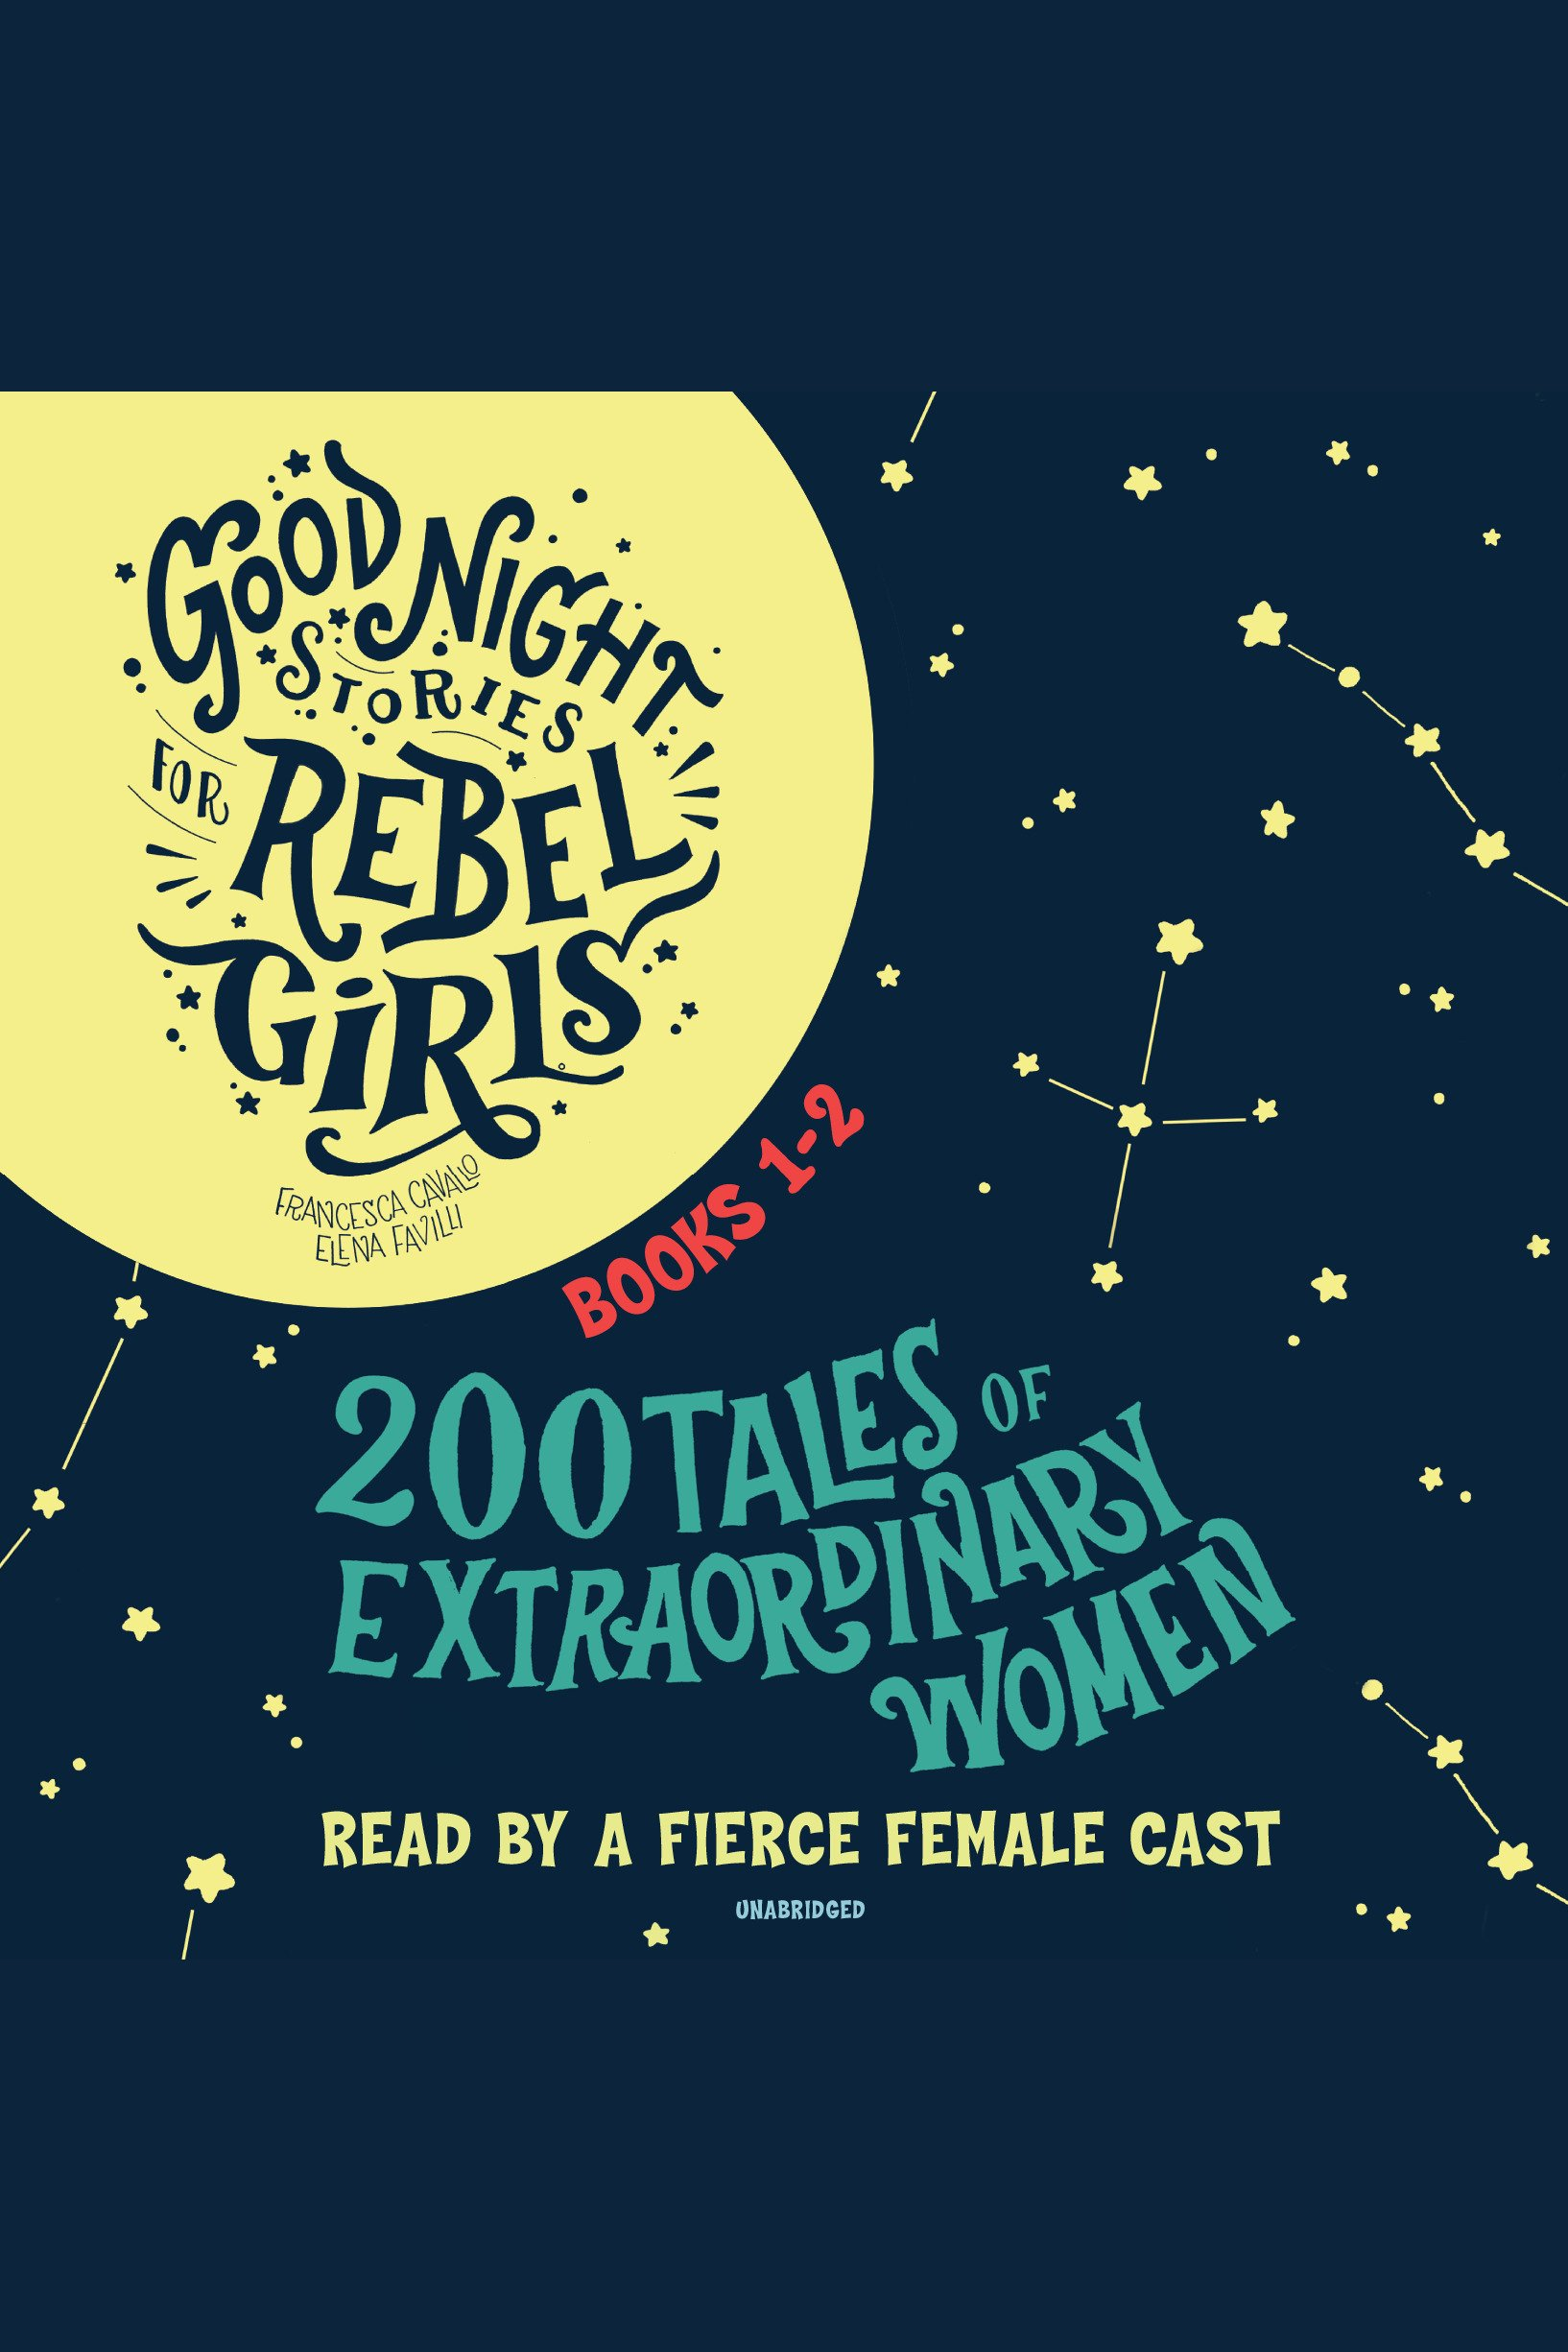 Good Night Stories for Rebel Girls, Books 1-2 200 Tales of Extraordinary Women